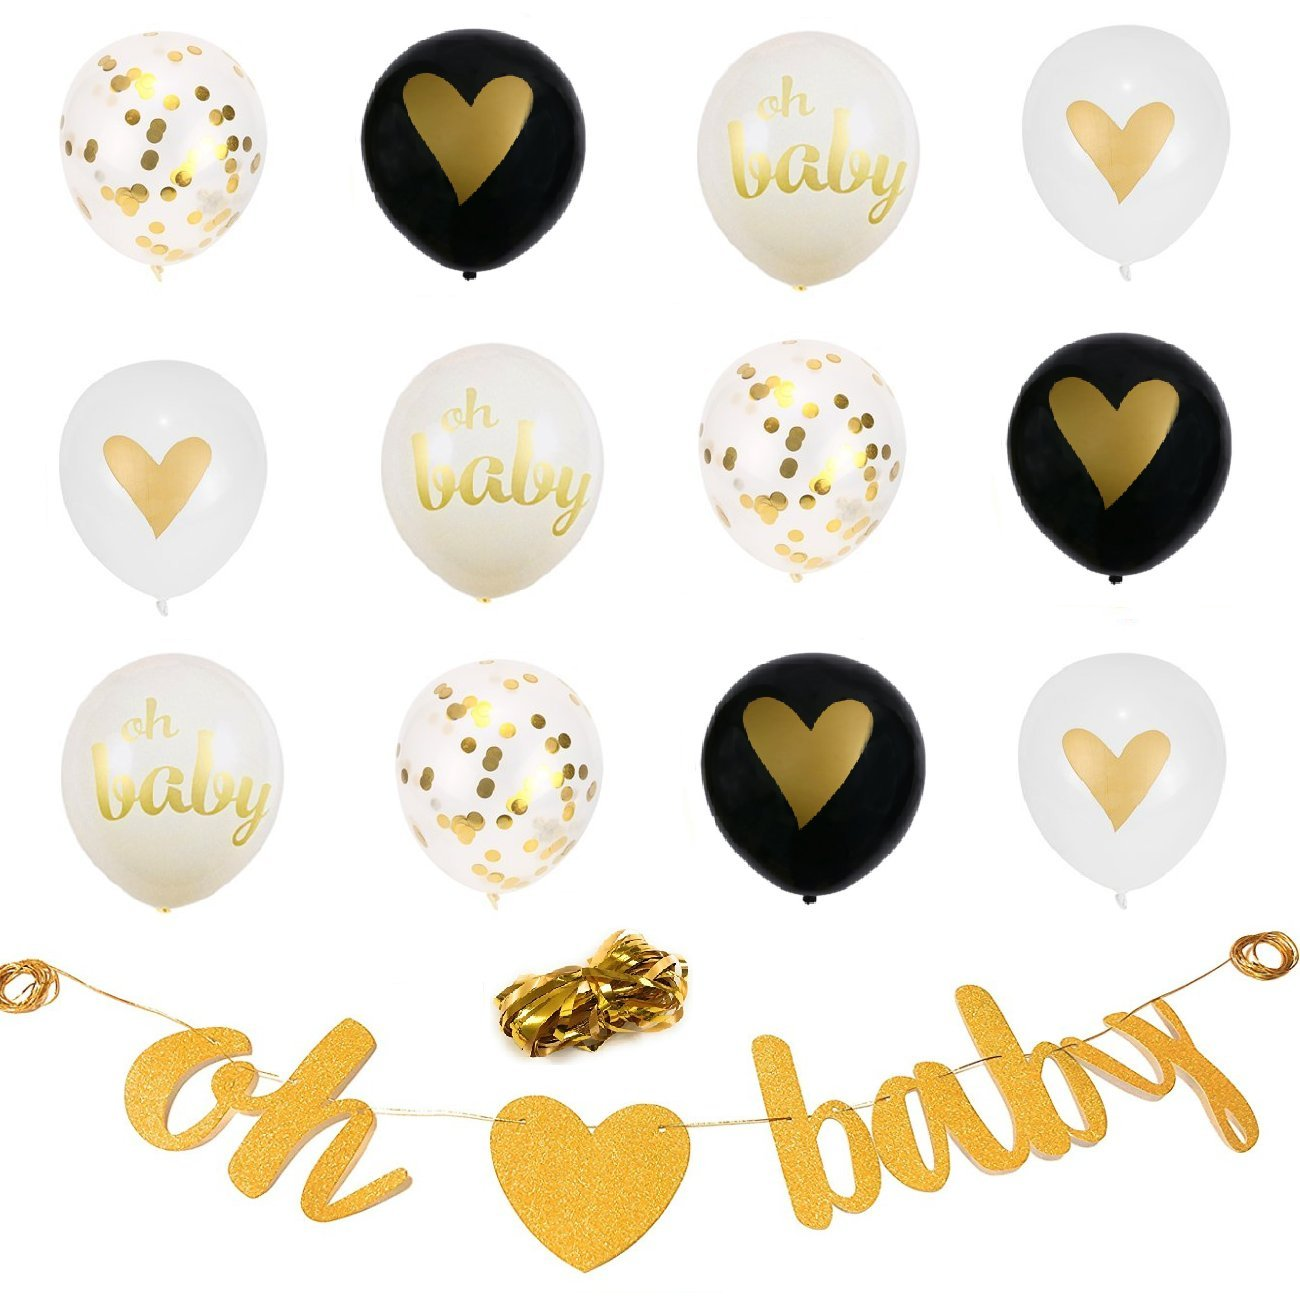 XERITA Gold Baby Shower Decorations Neutral - Large Banner, Large 12 inch Latex Balloons, Ribbons - Party Kit for Gender Reveal Party - Gender Neutral (Gold & Black)